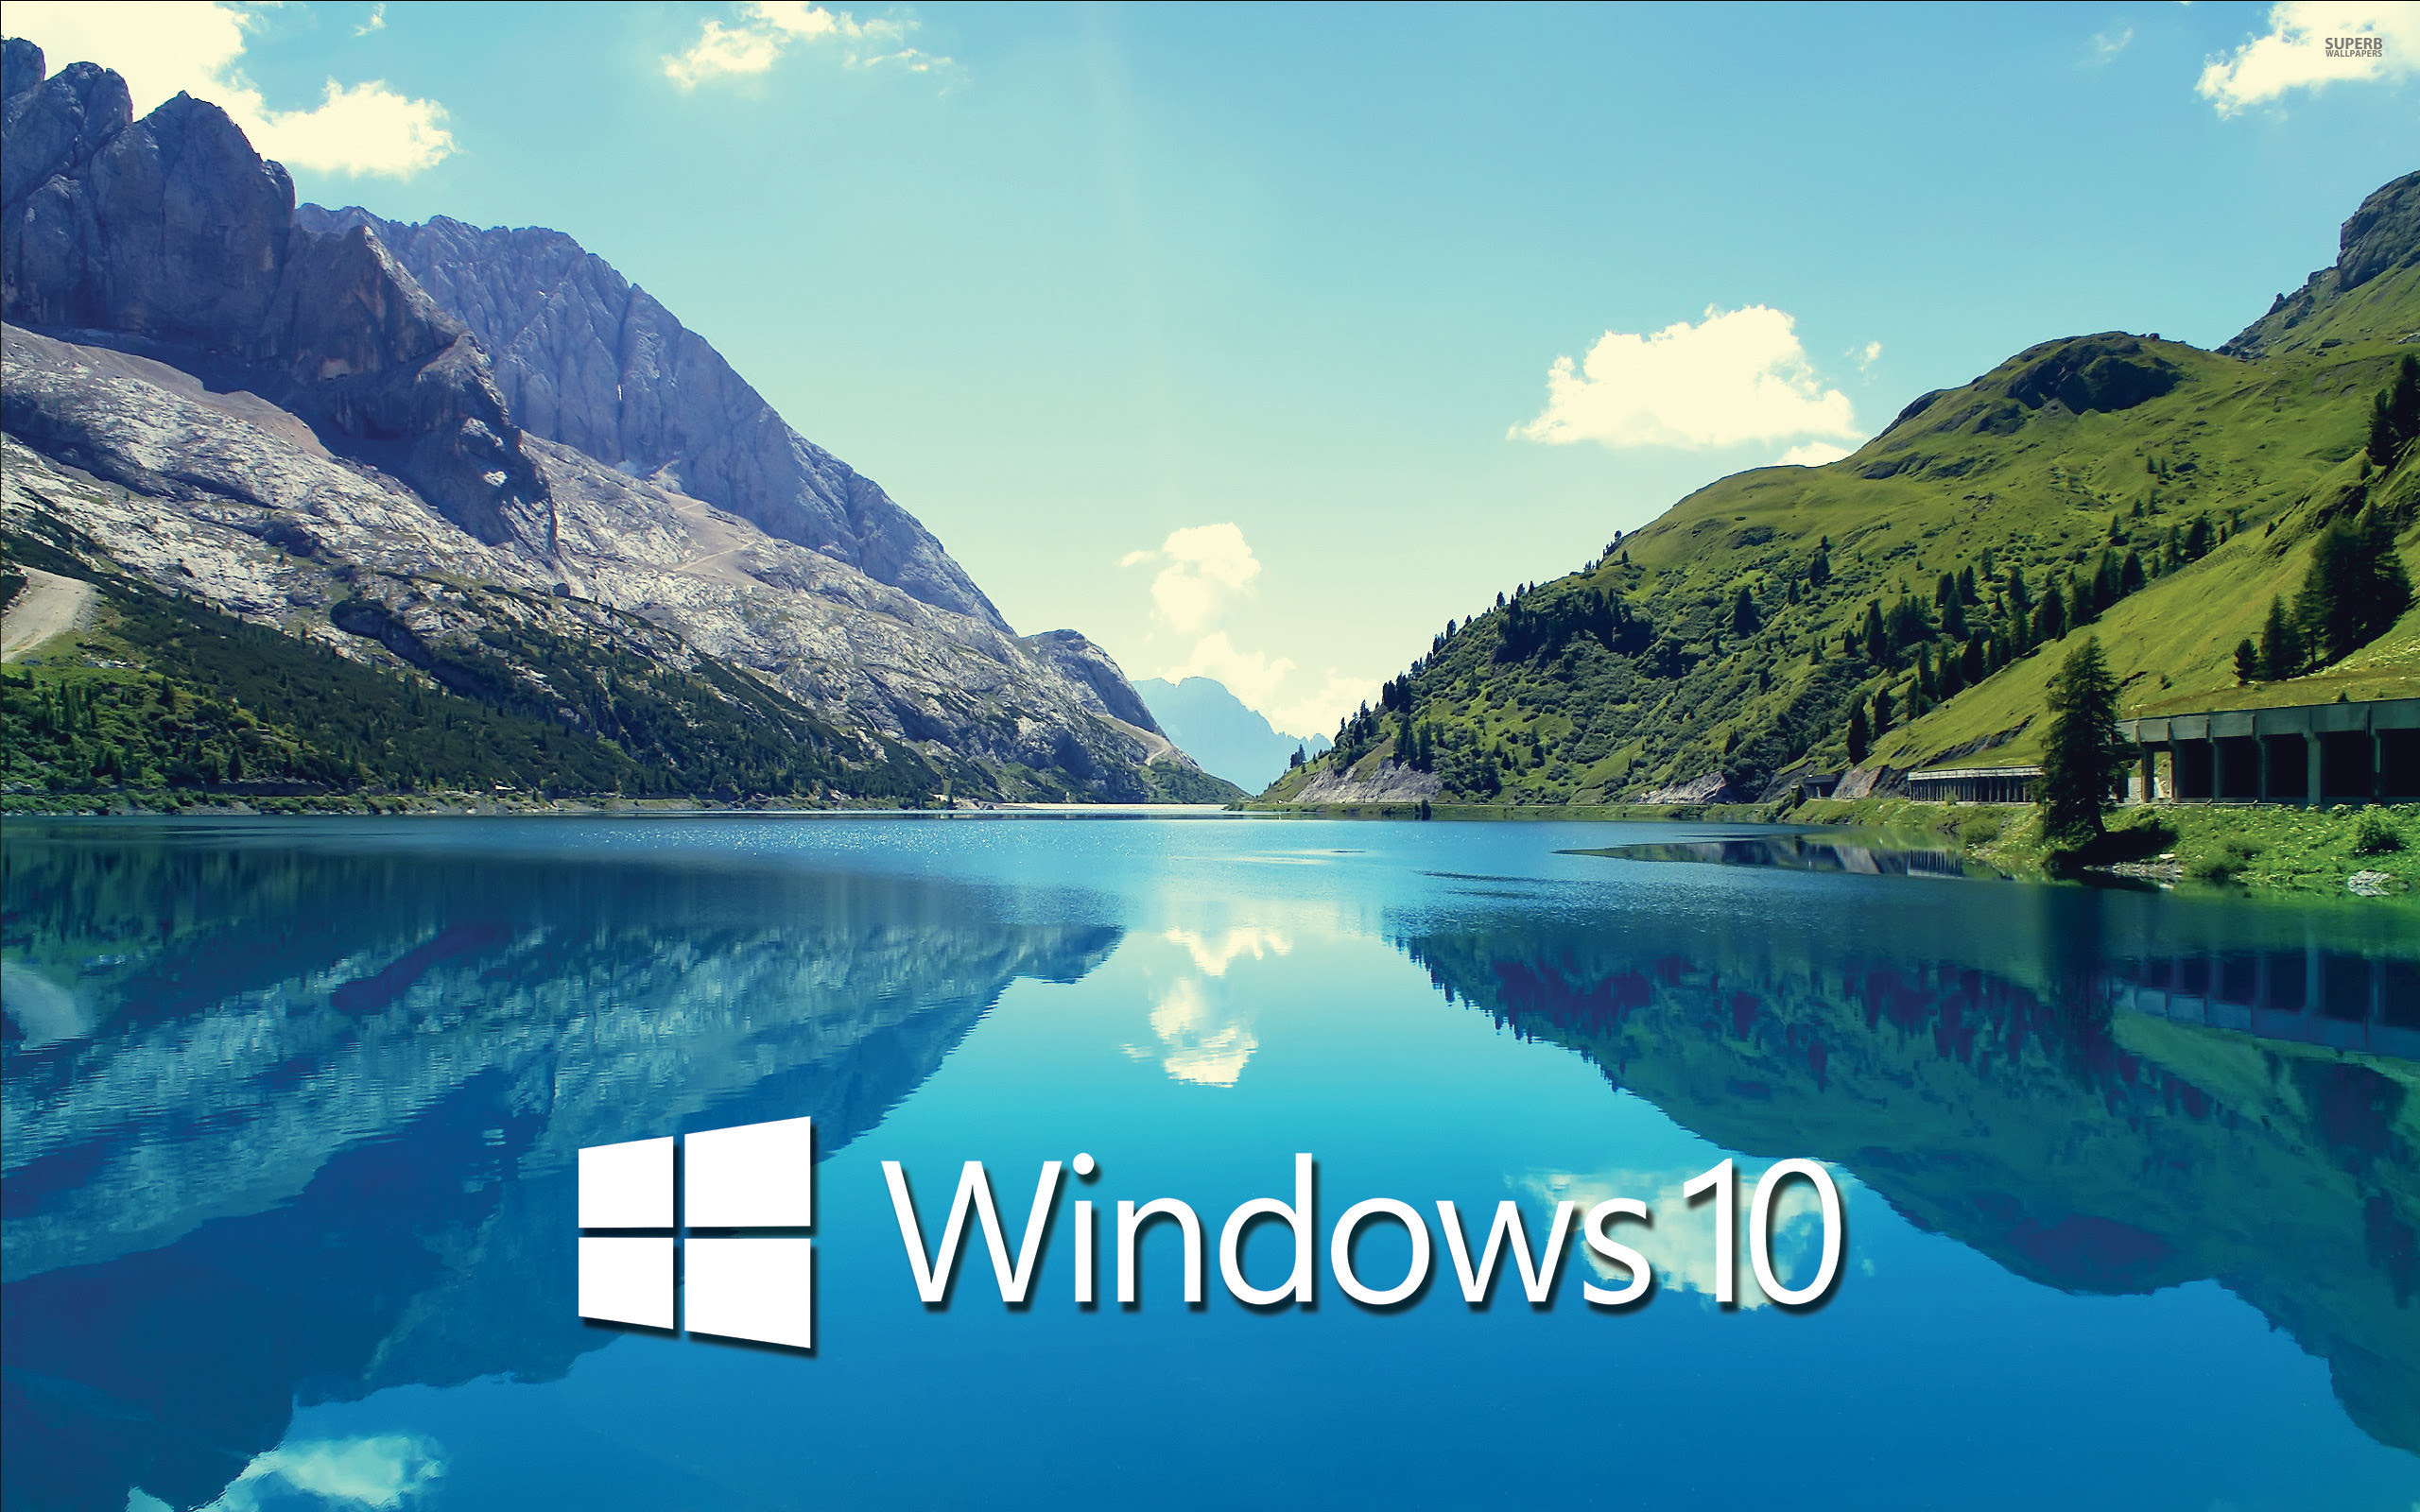 Windows 10 Wallpaper 1920x1080 (75+ images)